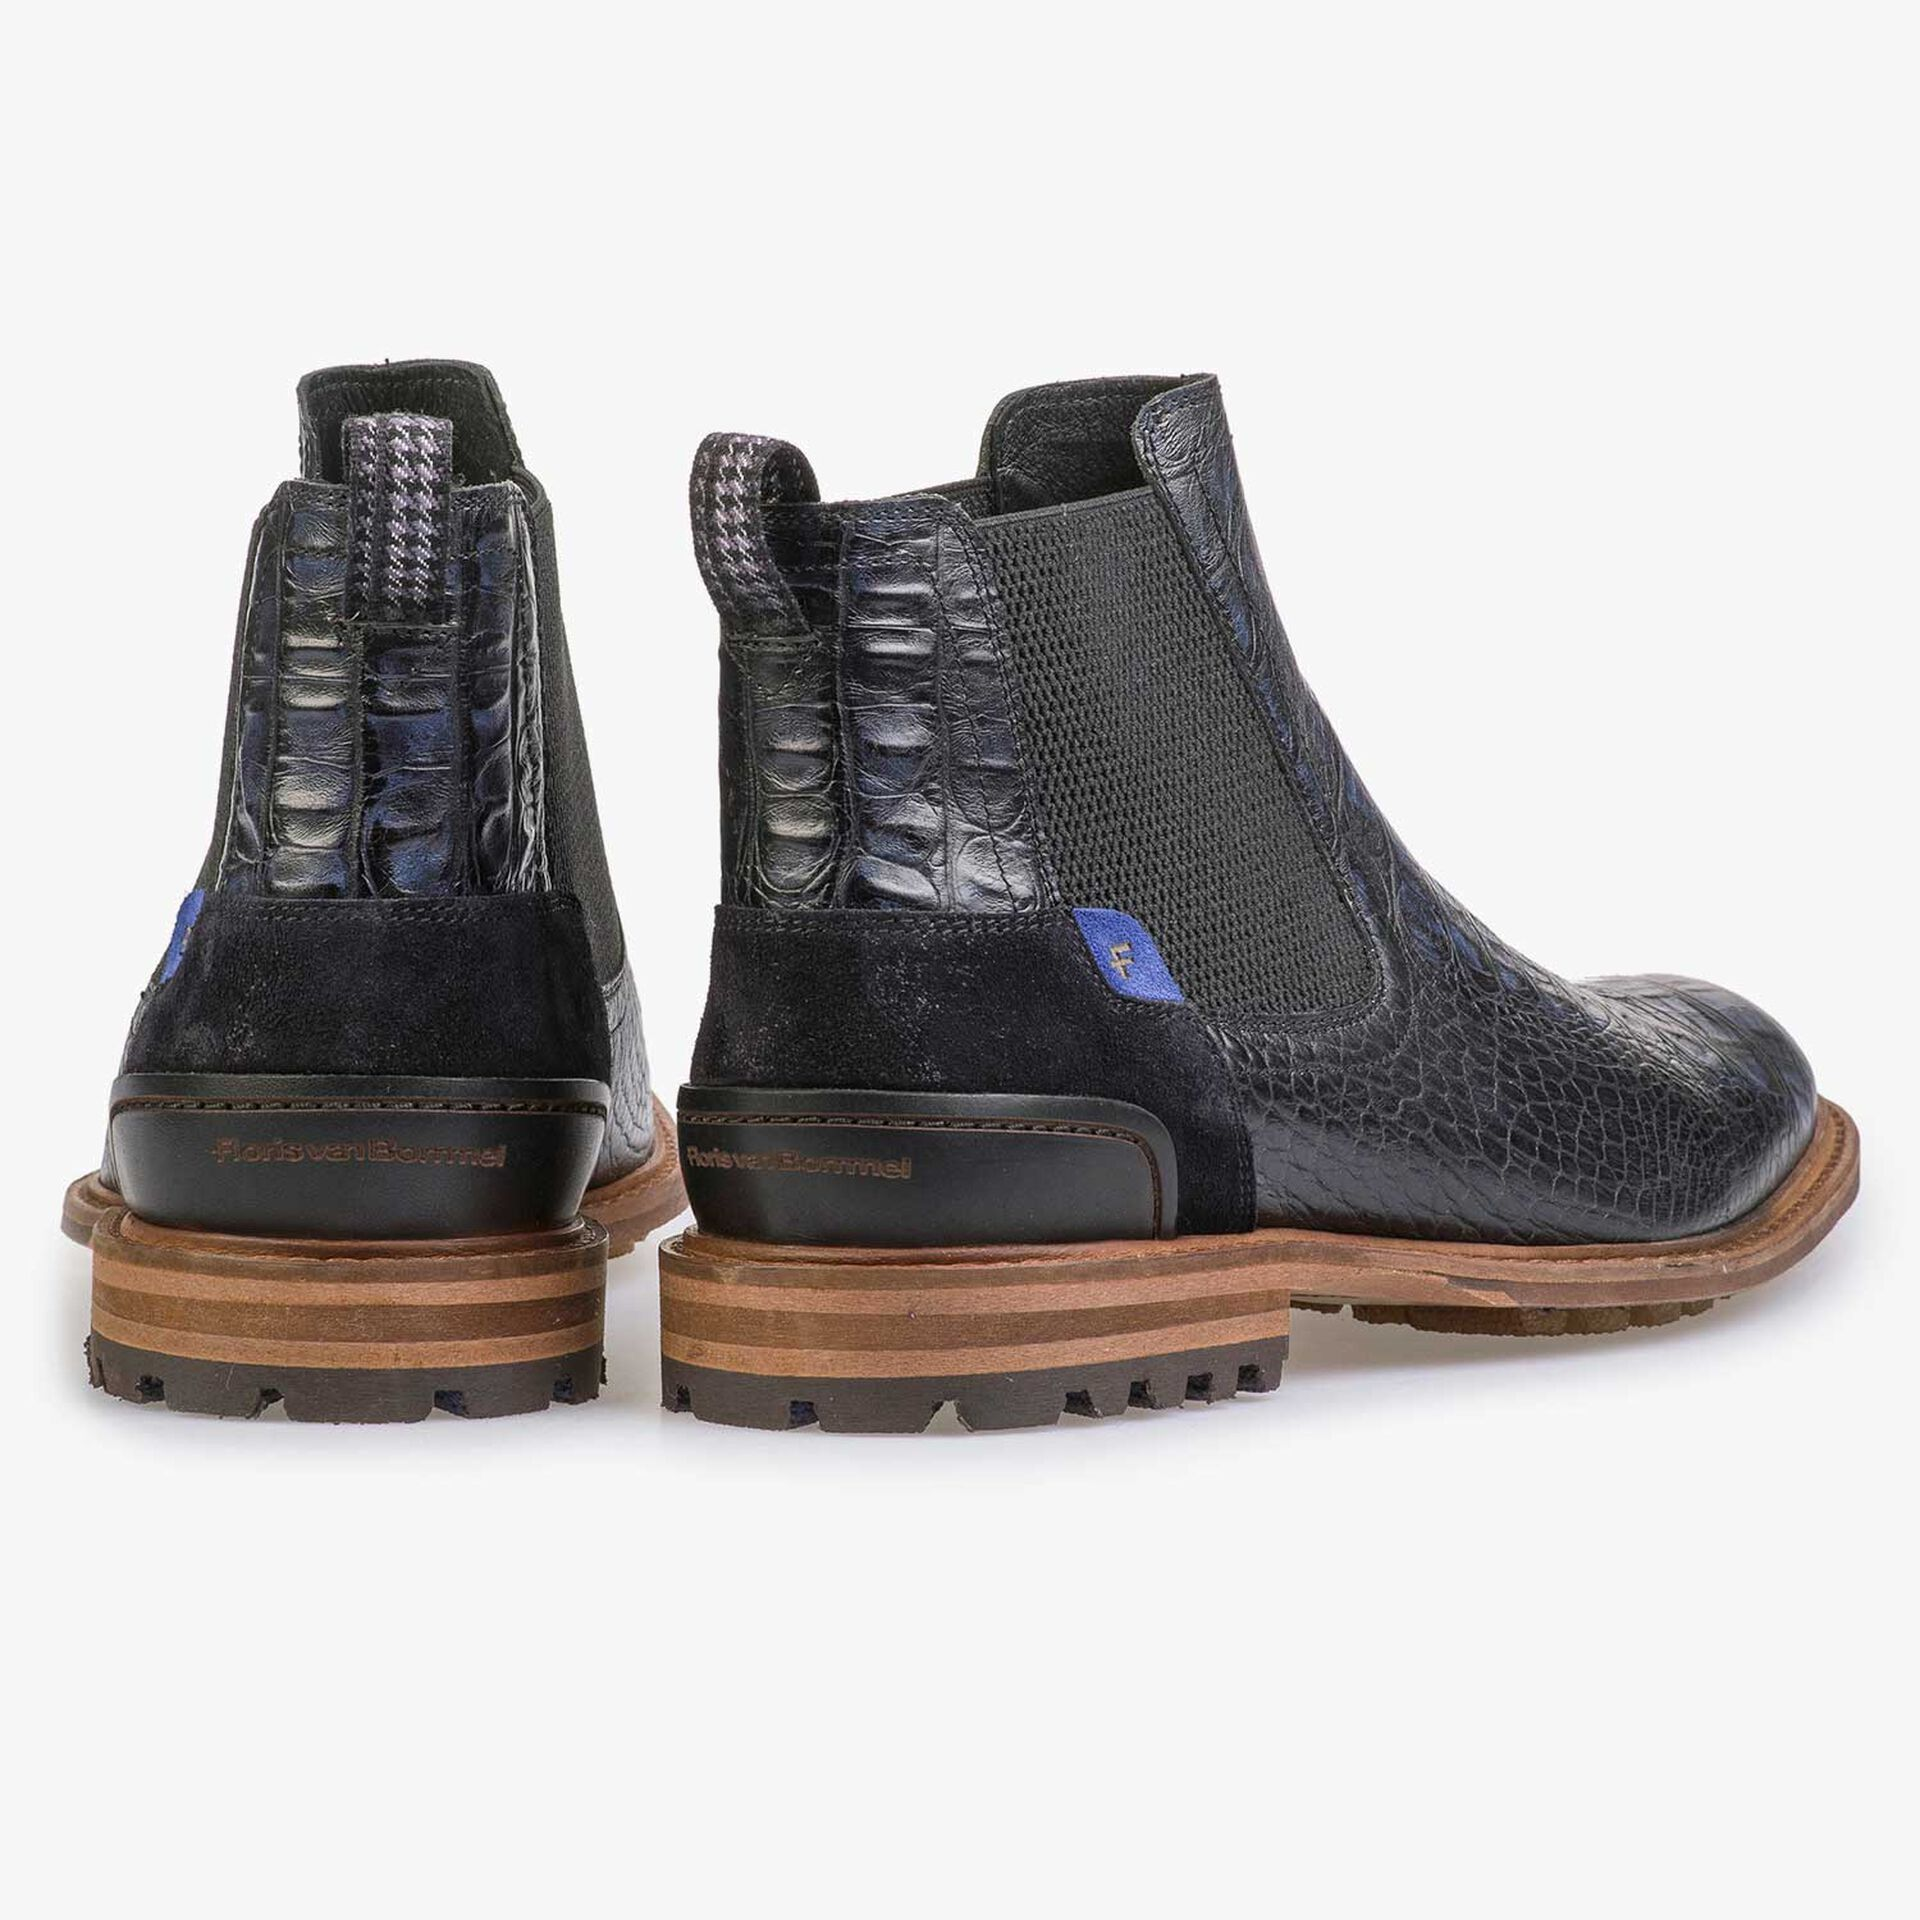 Blue leather Chelsea boot with croco print